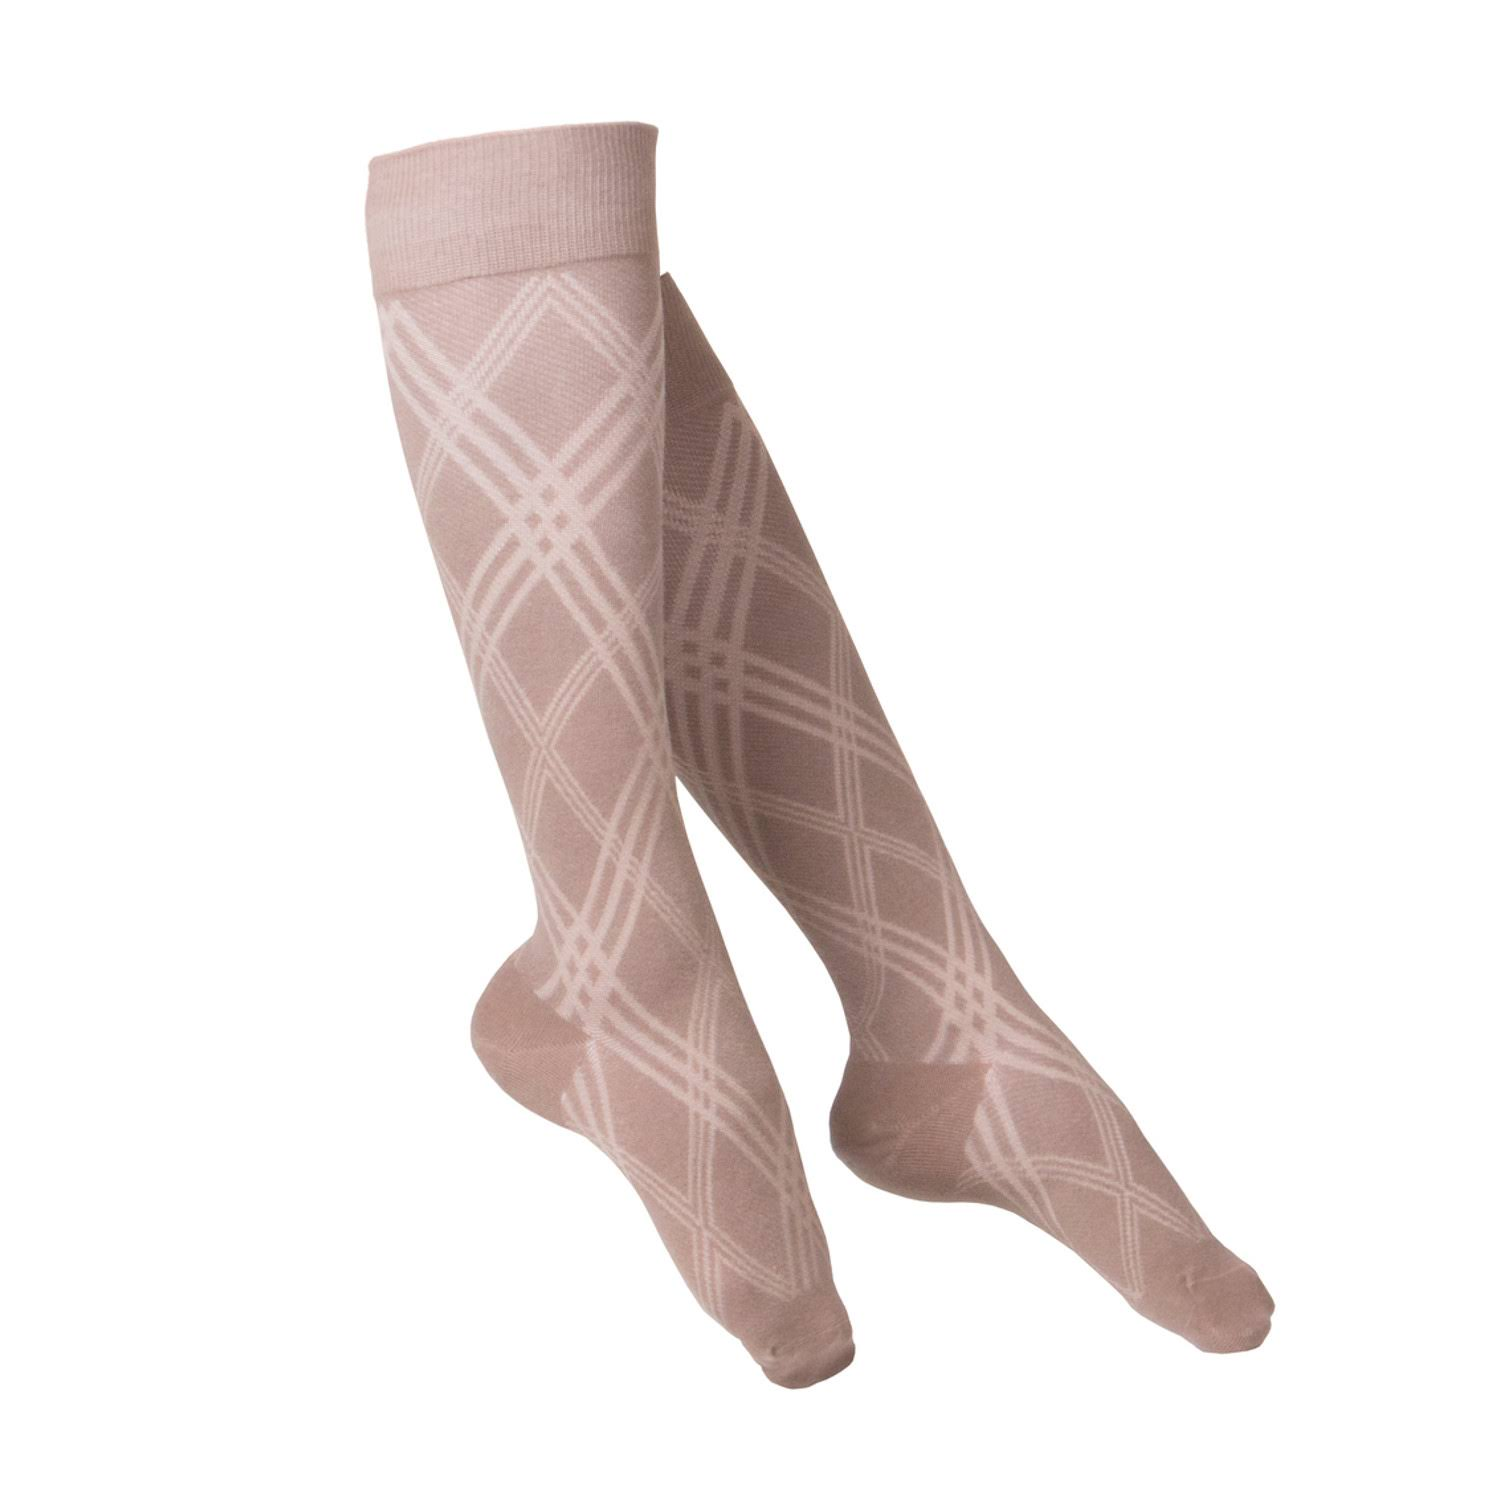 Touch 1064, Women's Compression Socks, Knee High, Argyle Pattern, 15-20 mmHg, Tan, Small